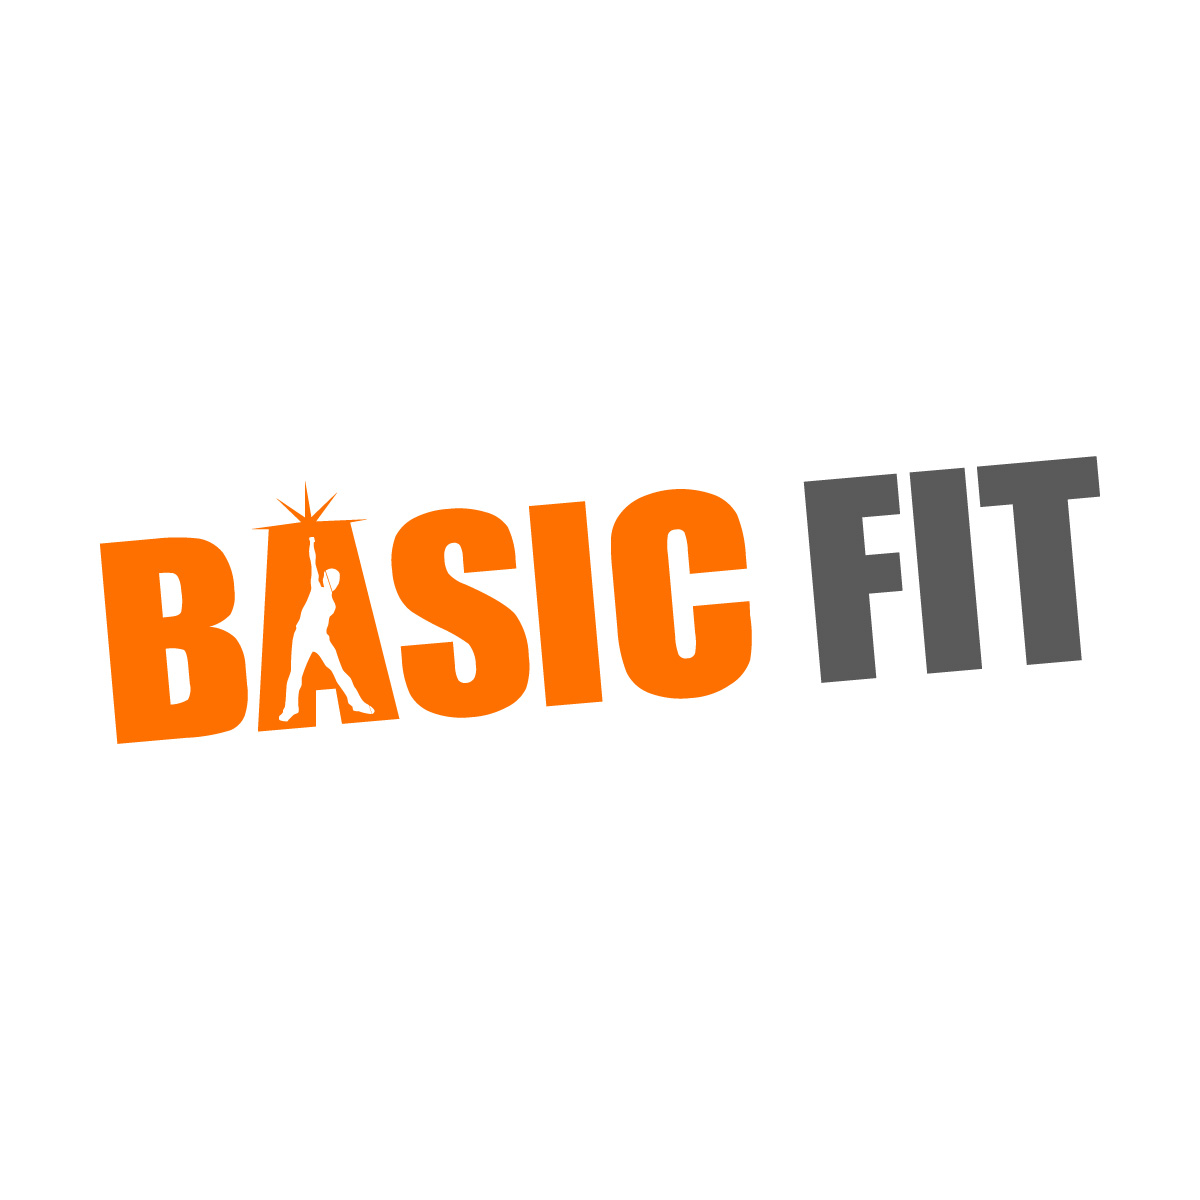 Basic fit logo squared